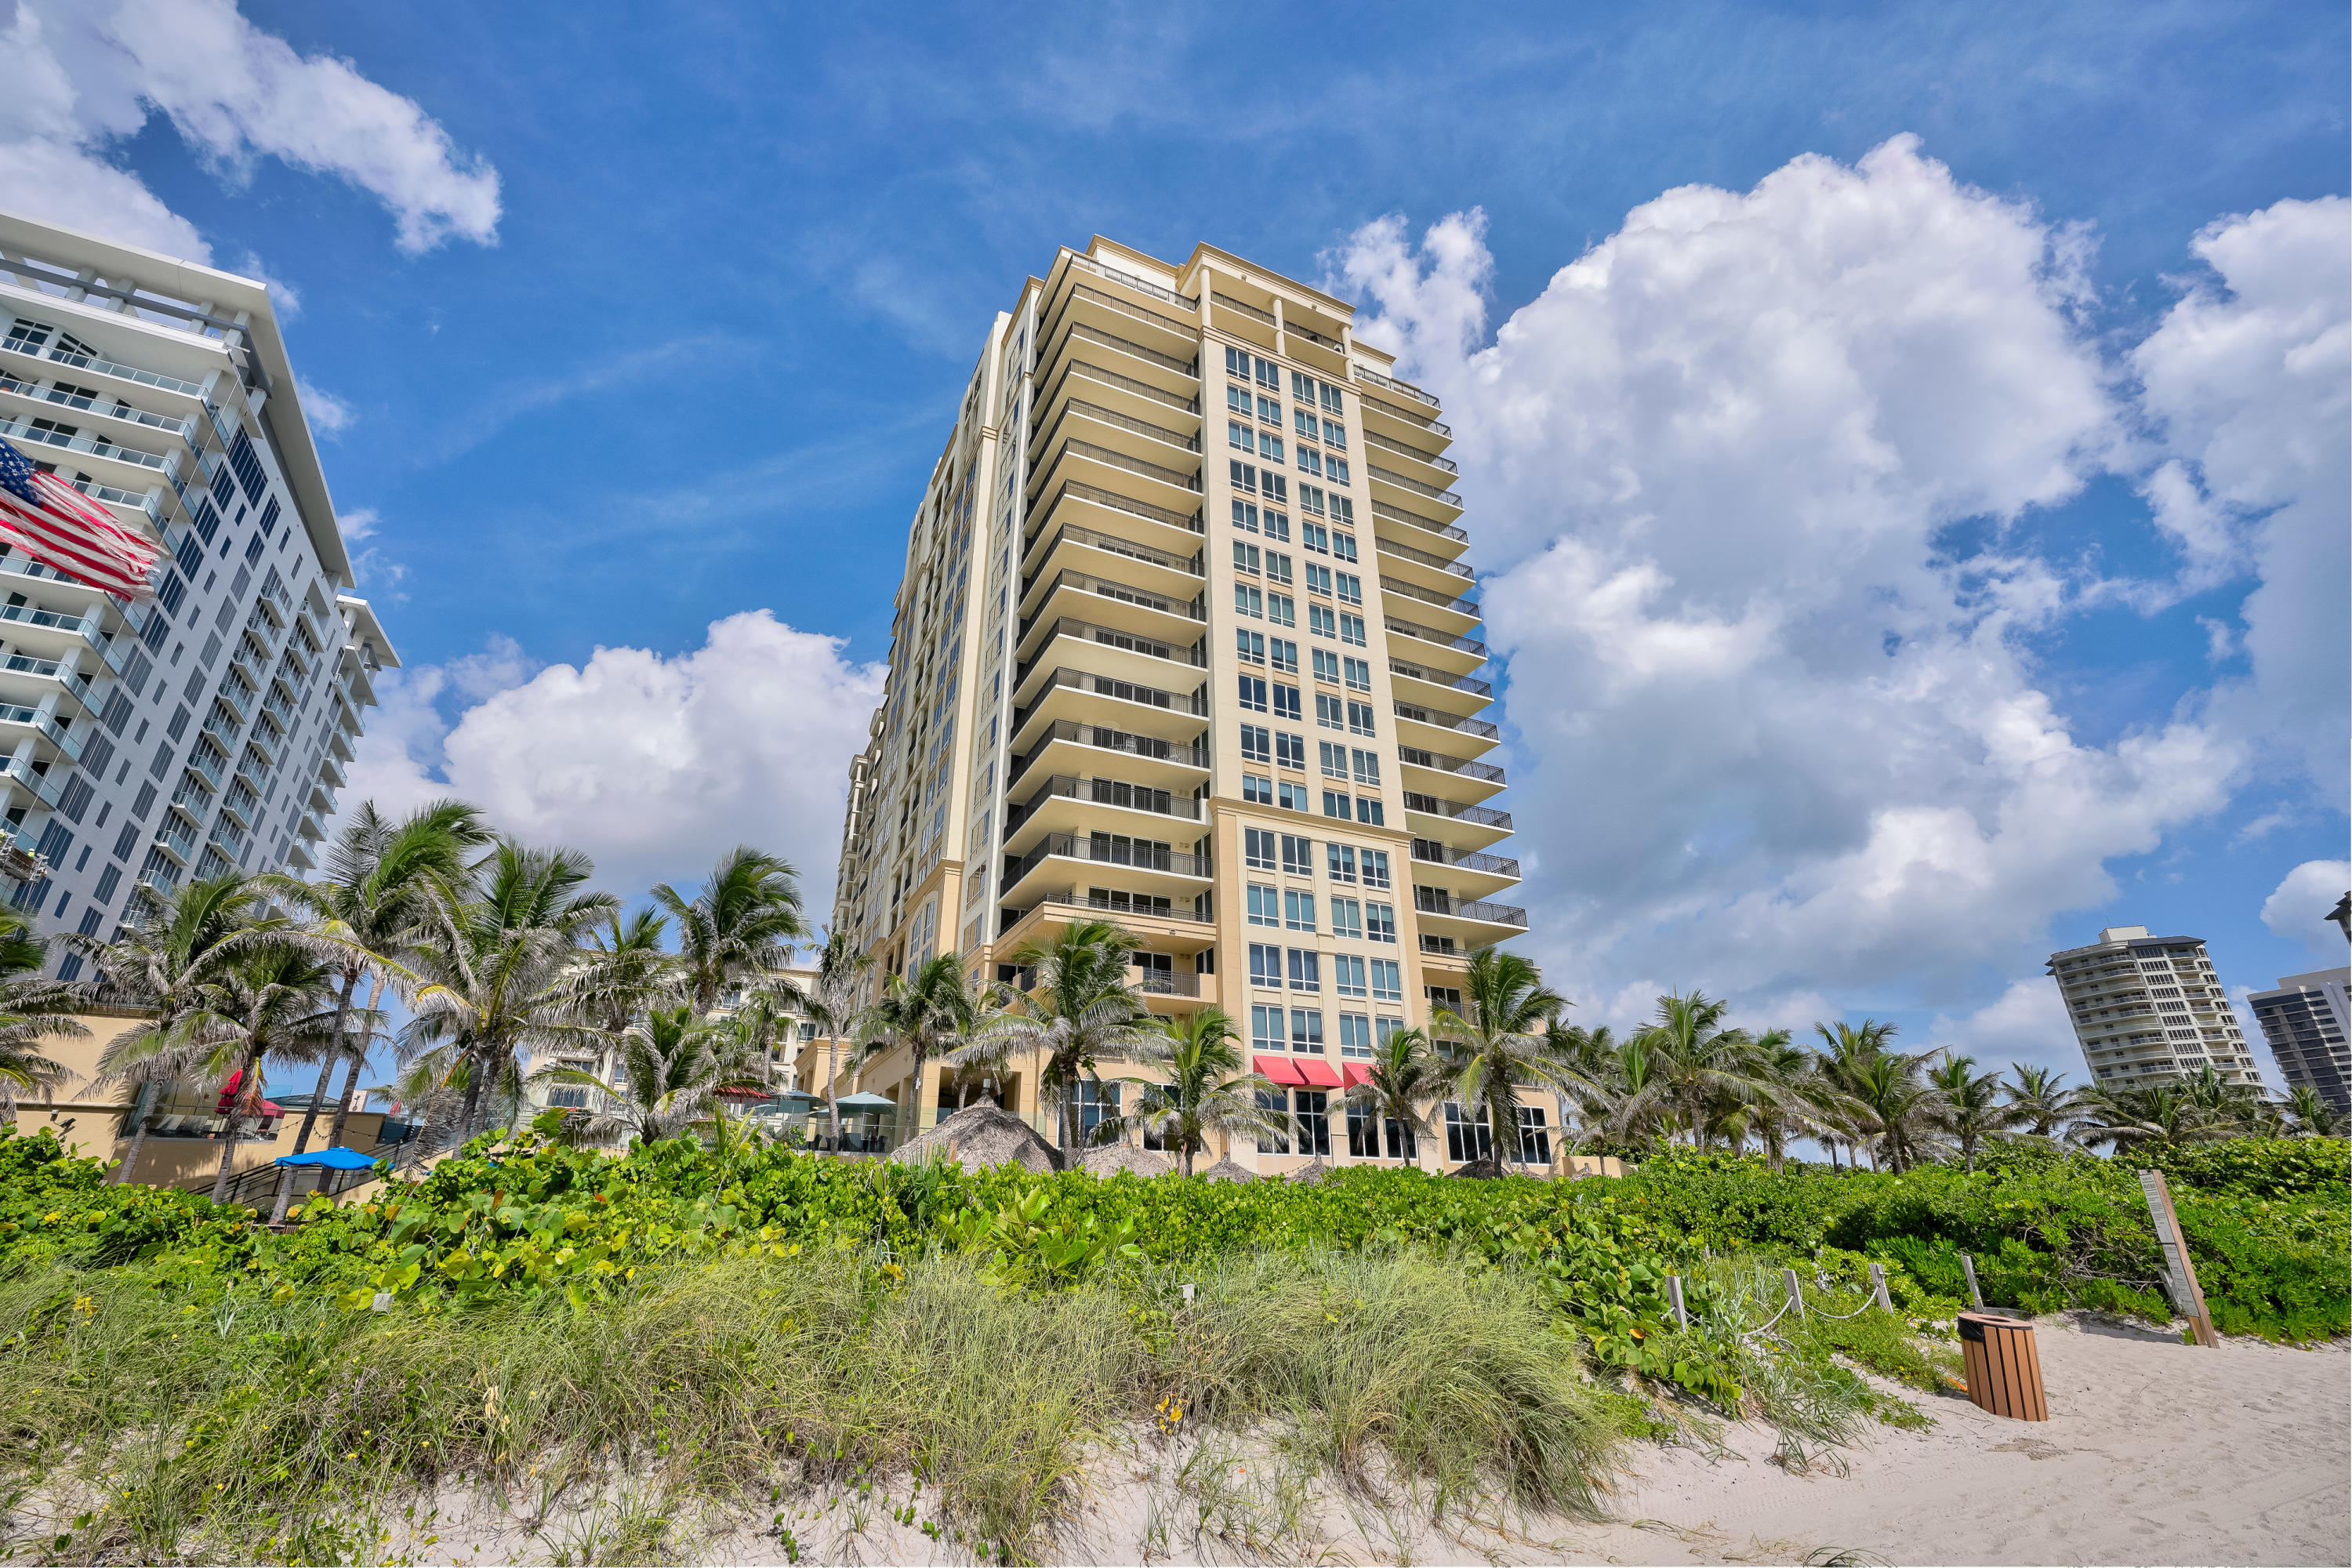 New Home for sale at 3800 Ocean Drive in Riviera Beach